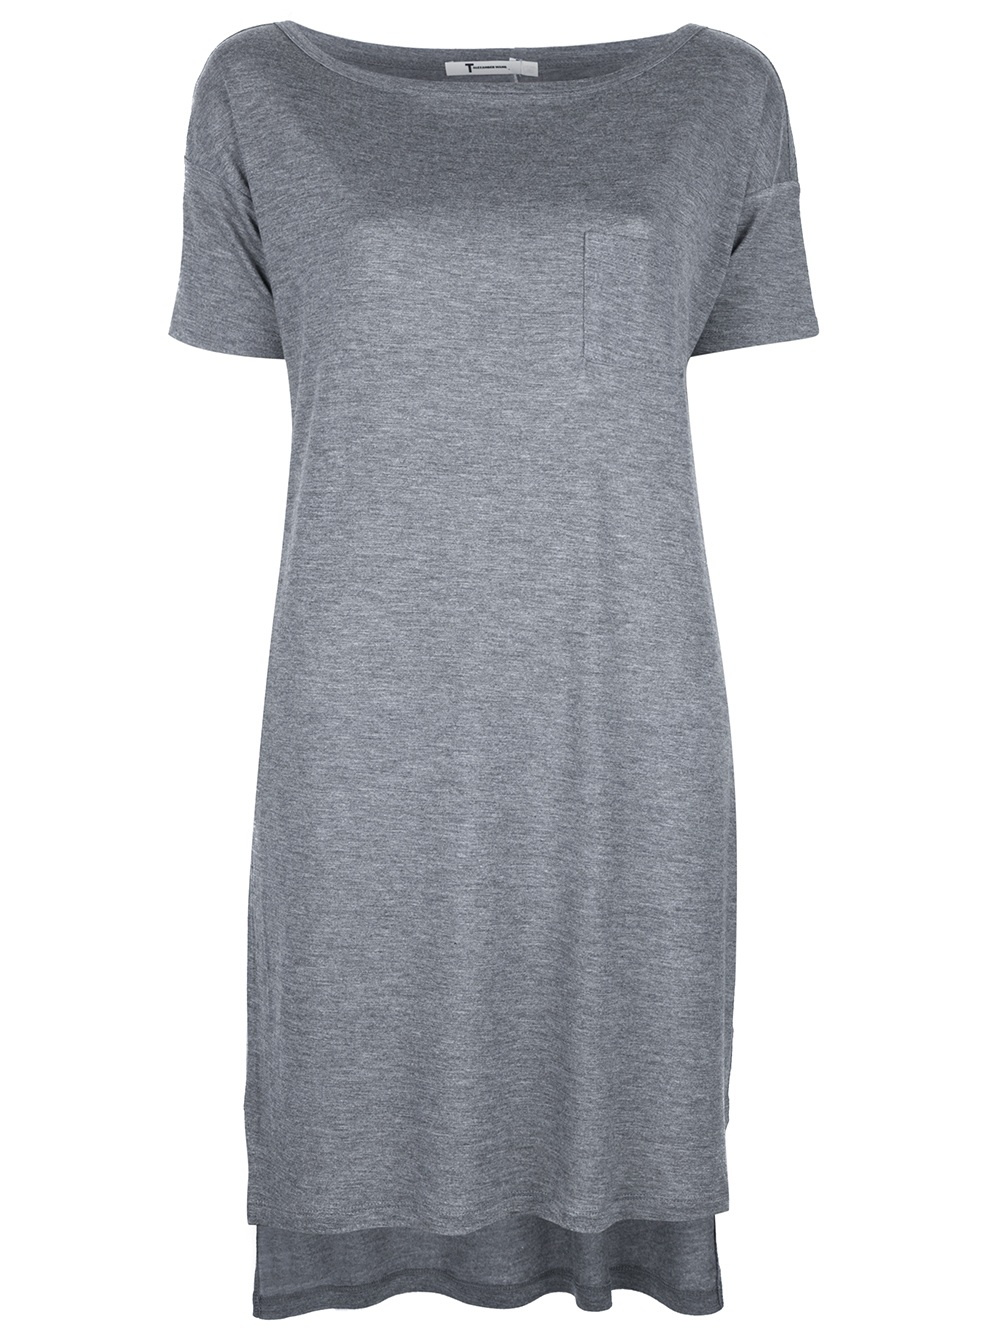 T by alexander wang t shirt dress in gray grey lyst for T by alexander wang t shirt